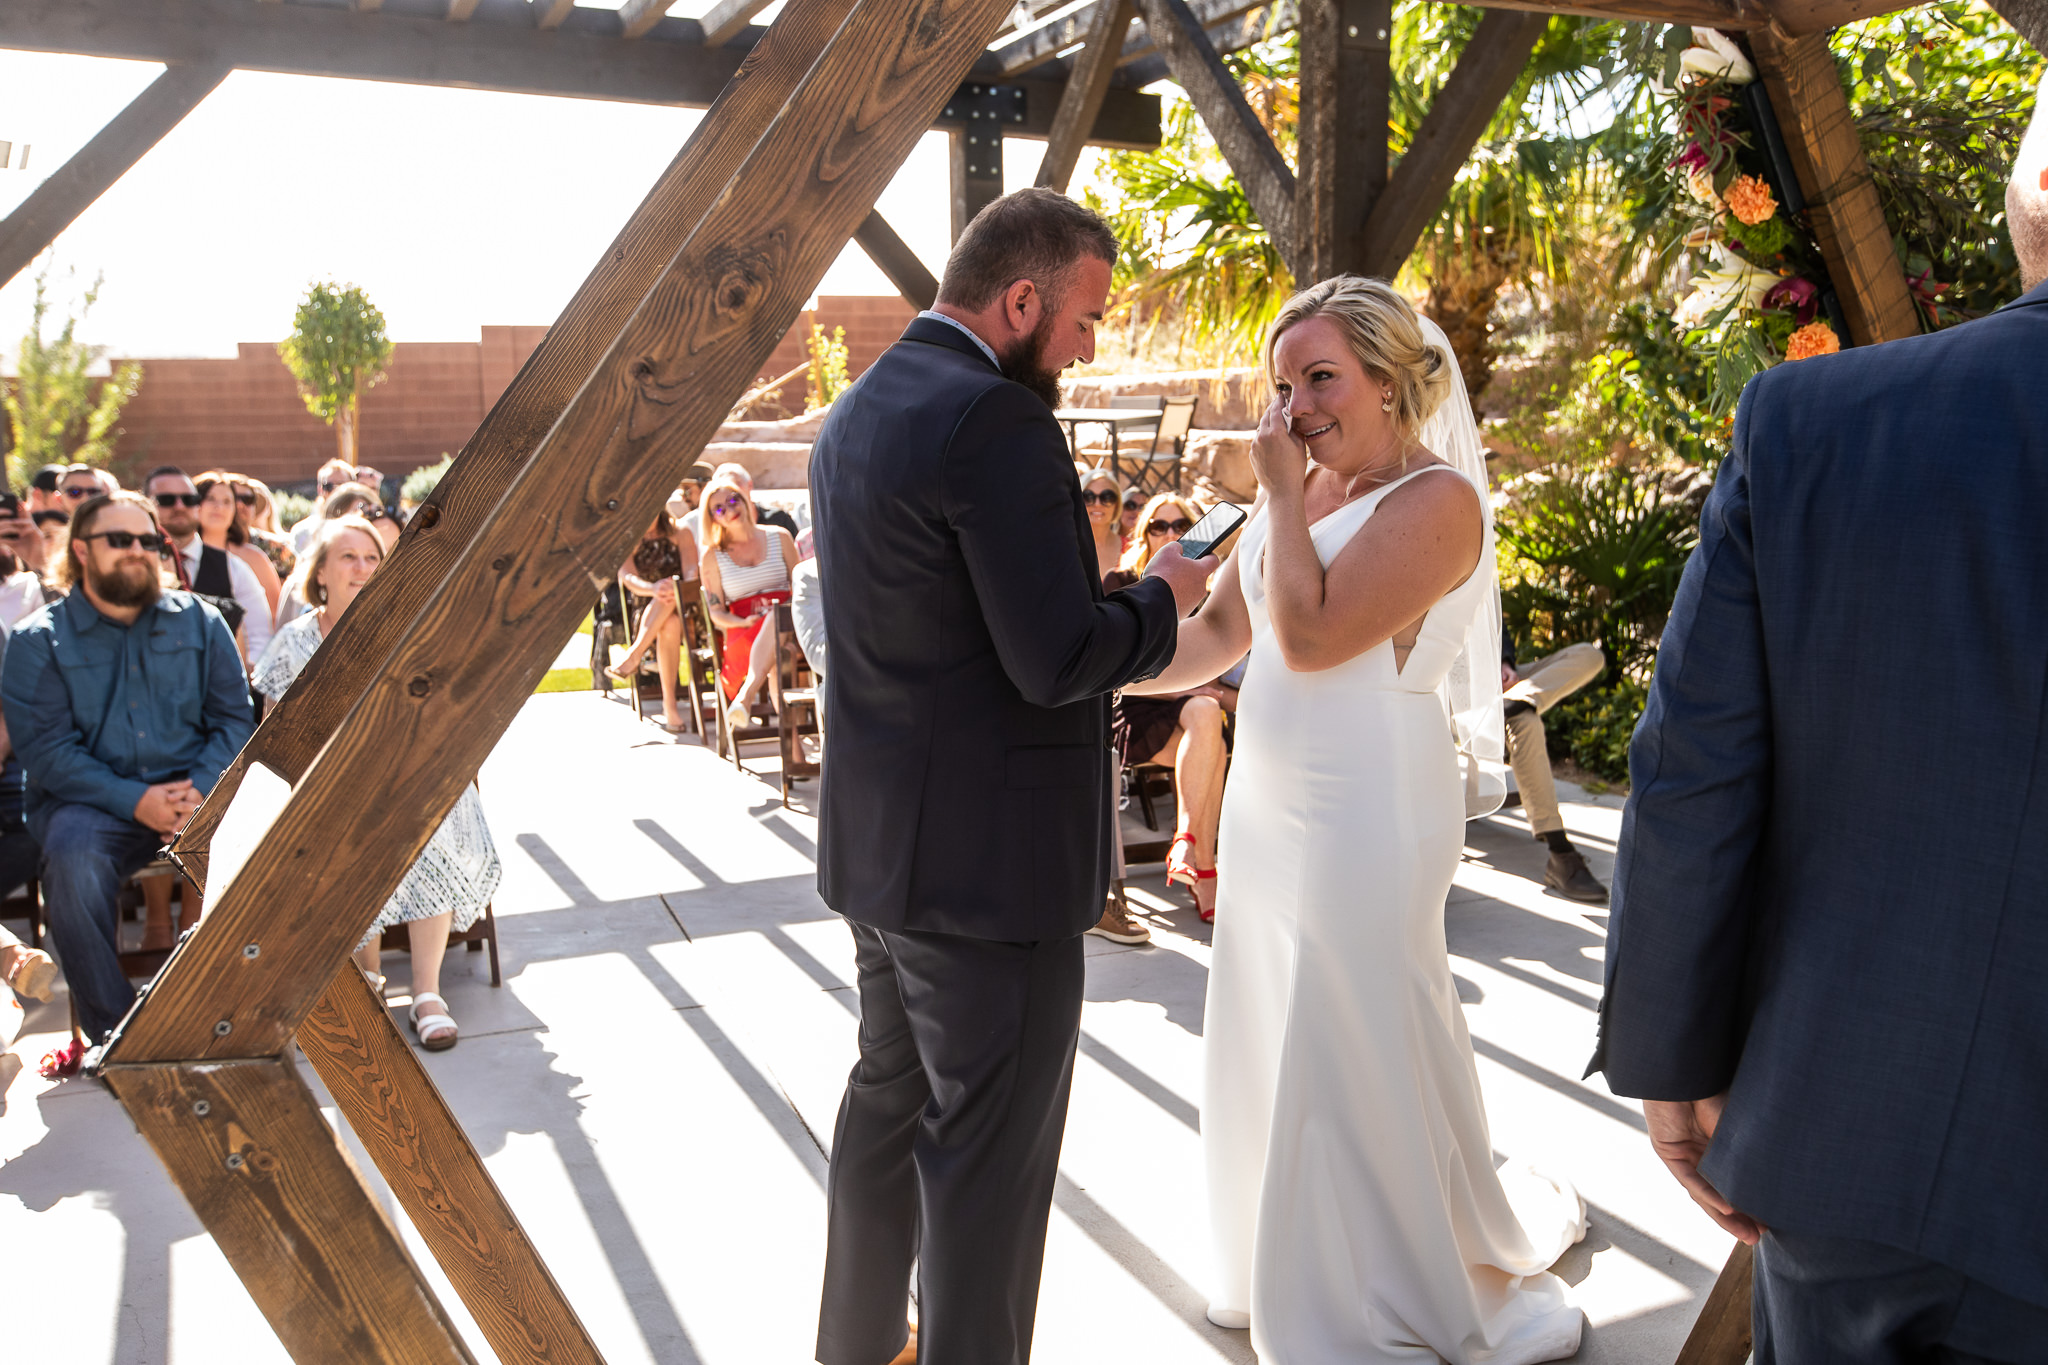 Couple Reads Vows to each other